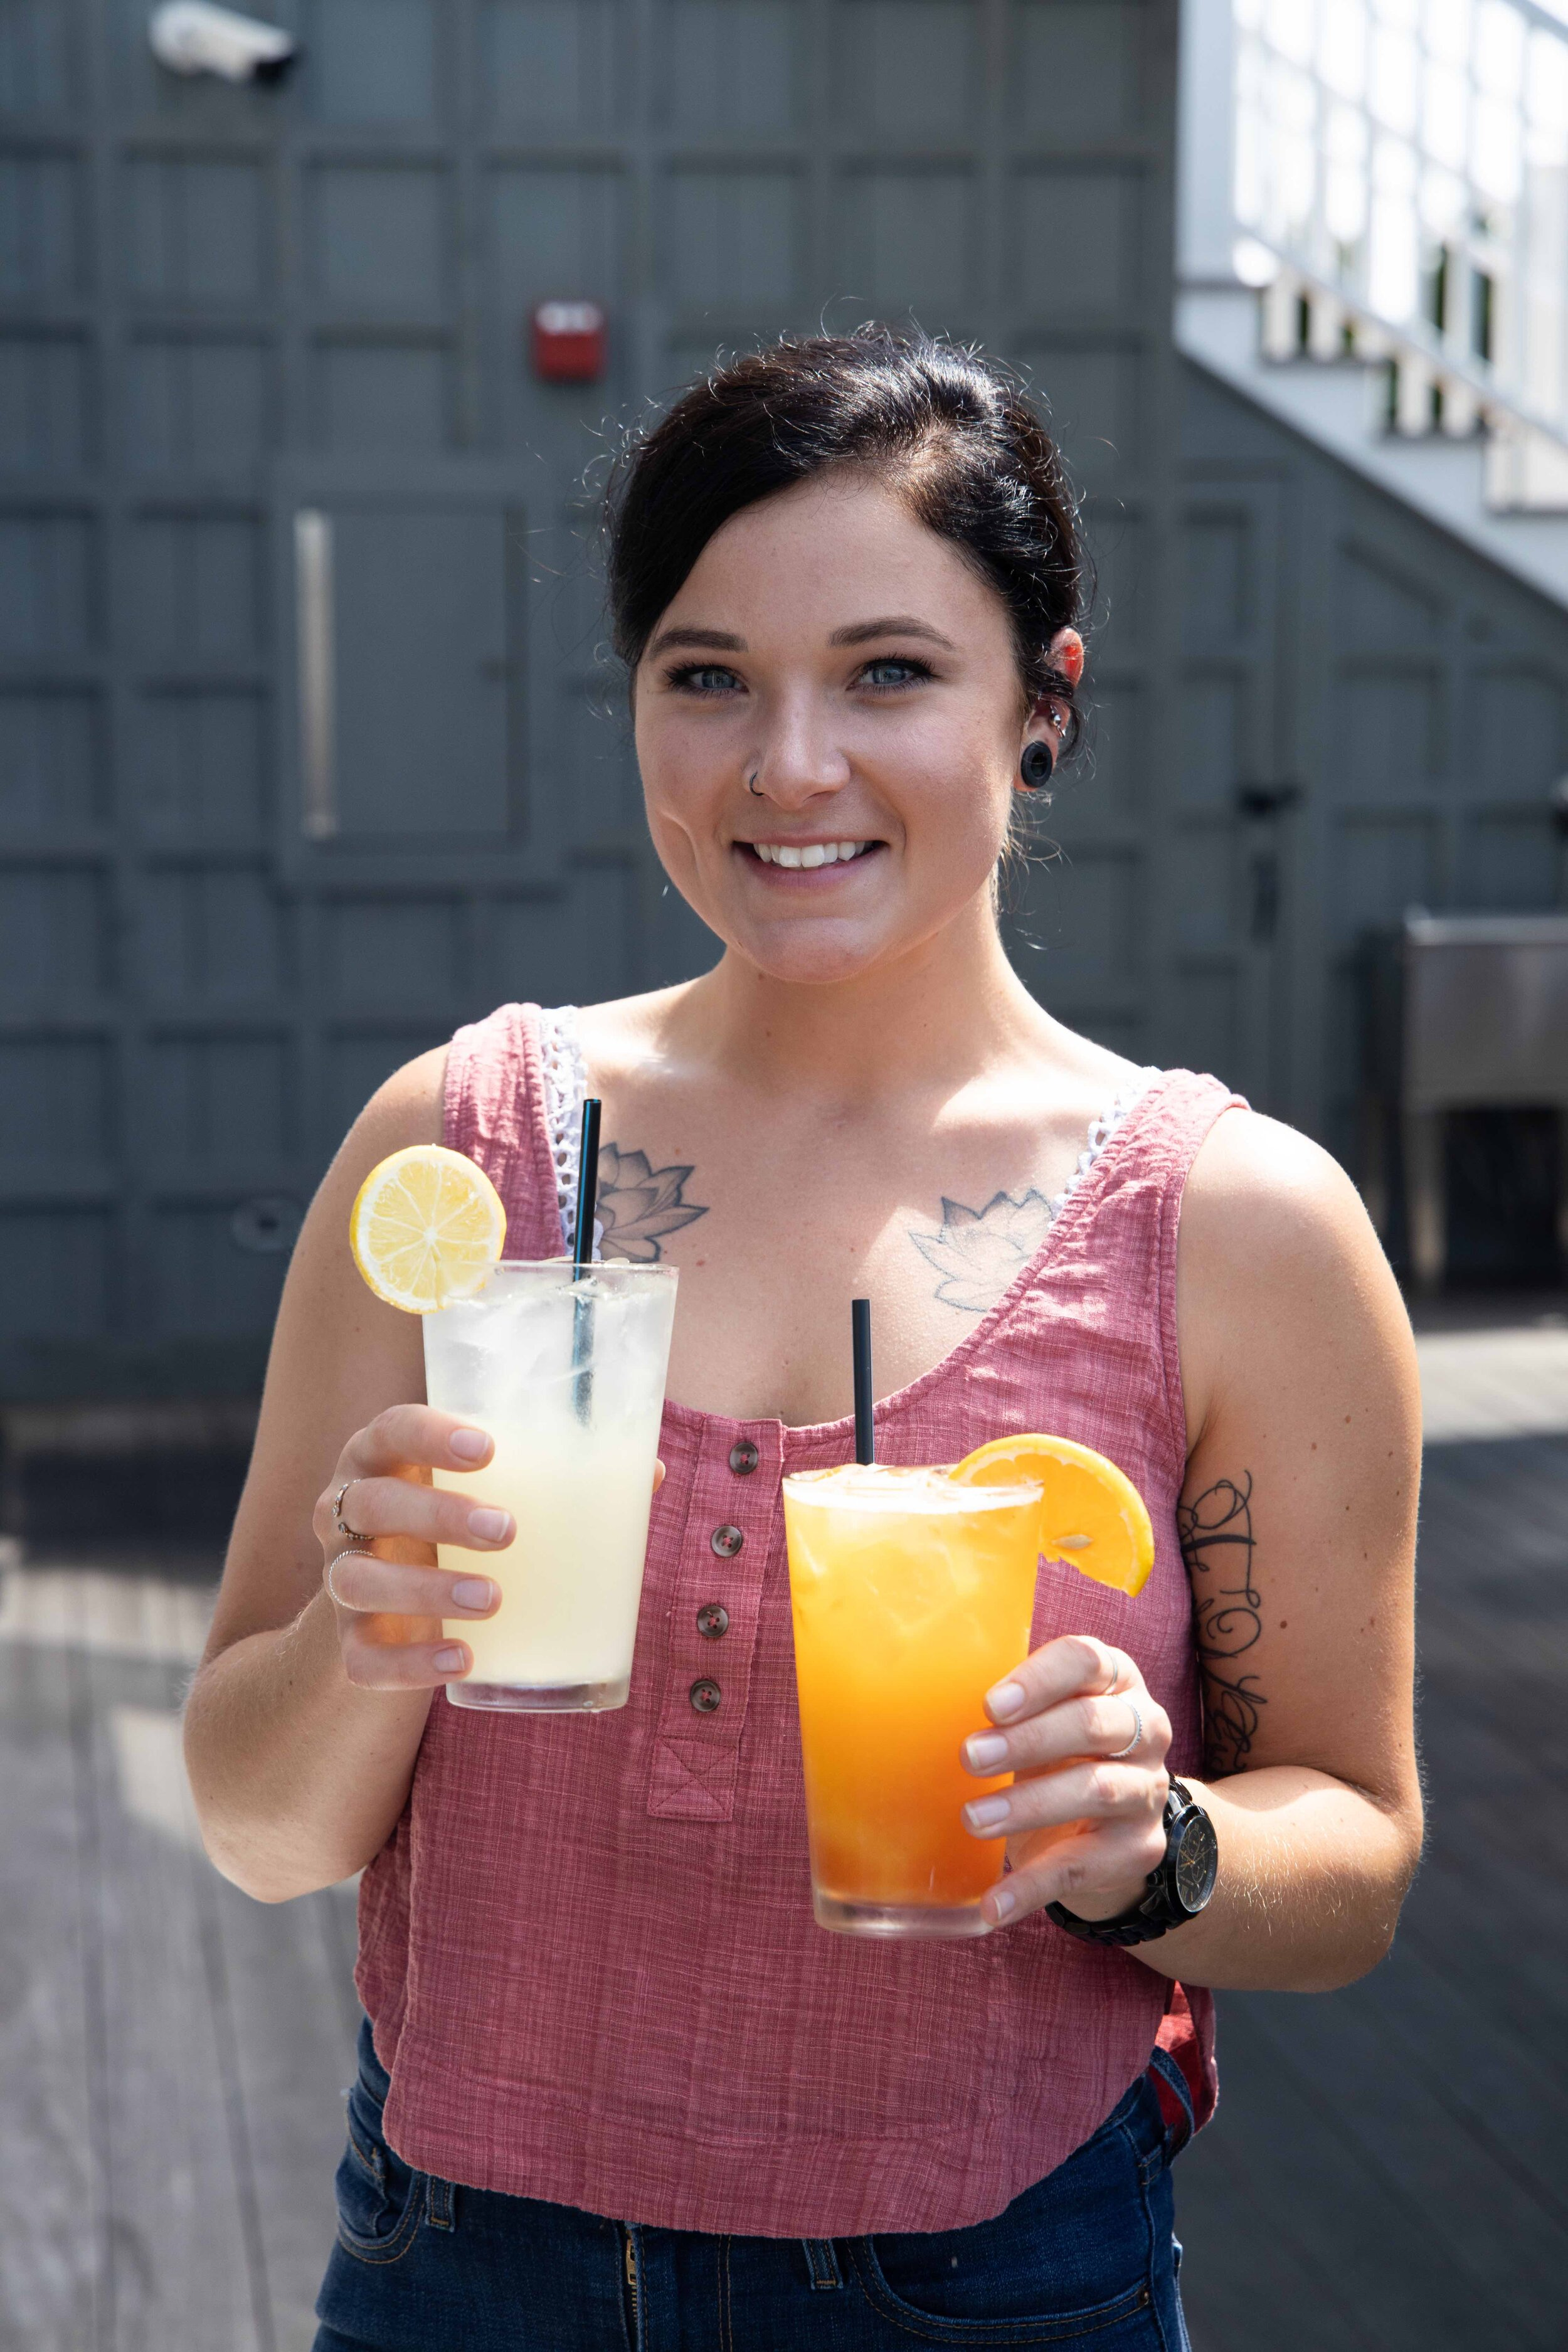 Ketch 22, a restaurant that is committed to showcasing local providers, has a full-on Crush menu, both at their outdoor bar overlooking the marina and the Bay and in their restaurant.